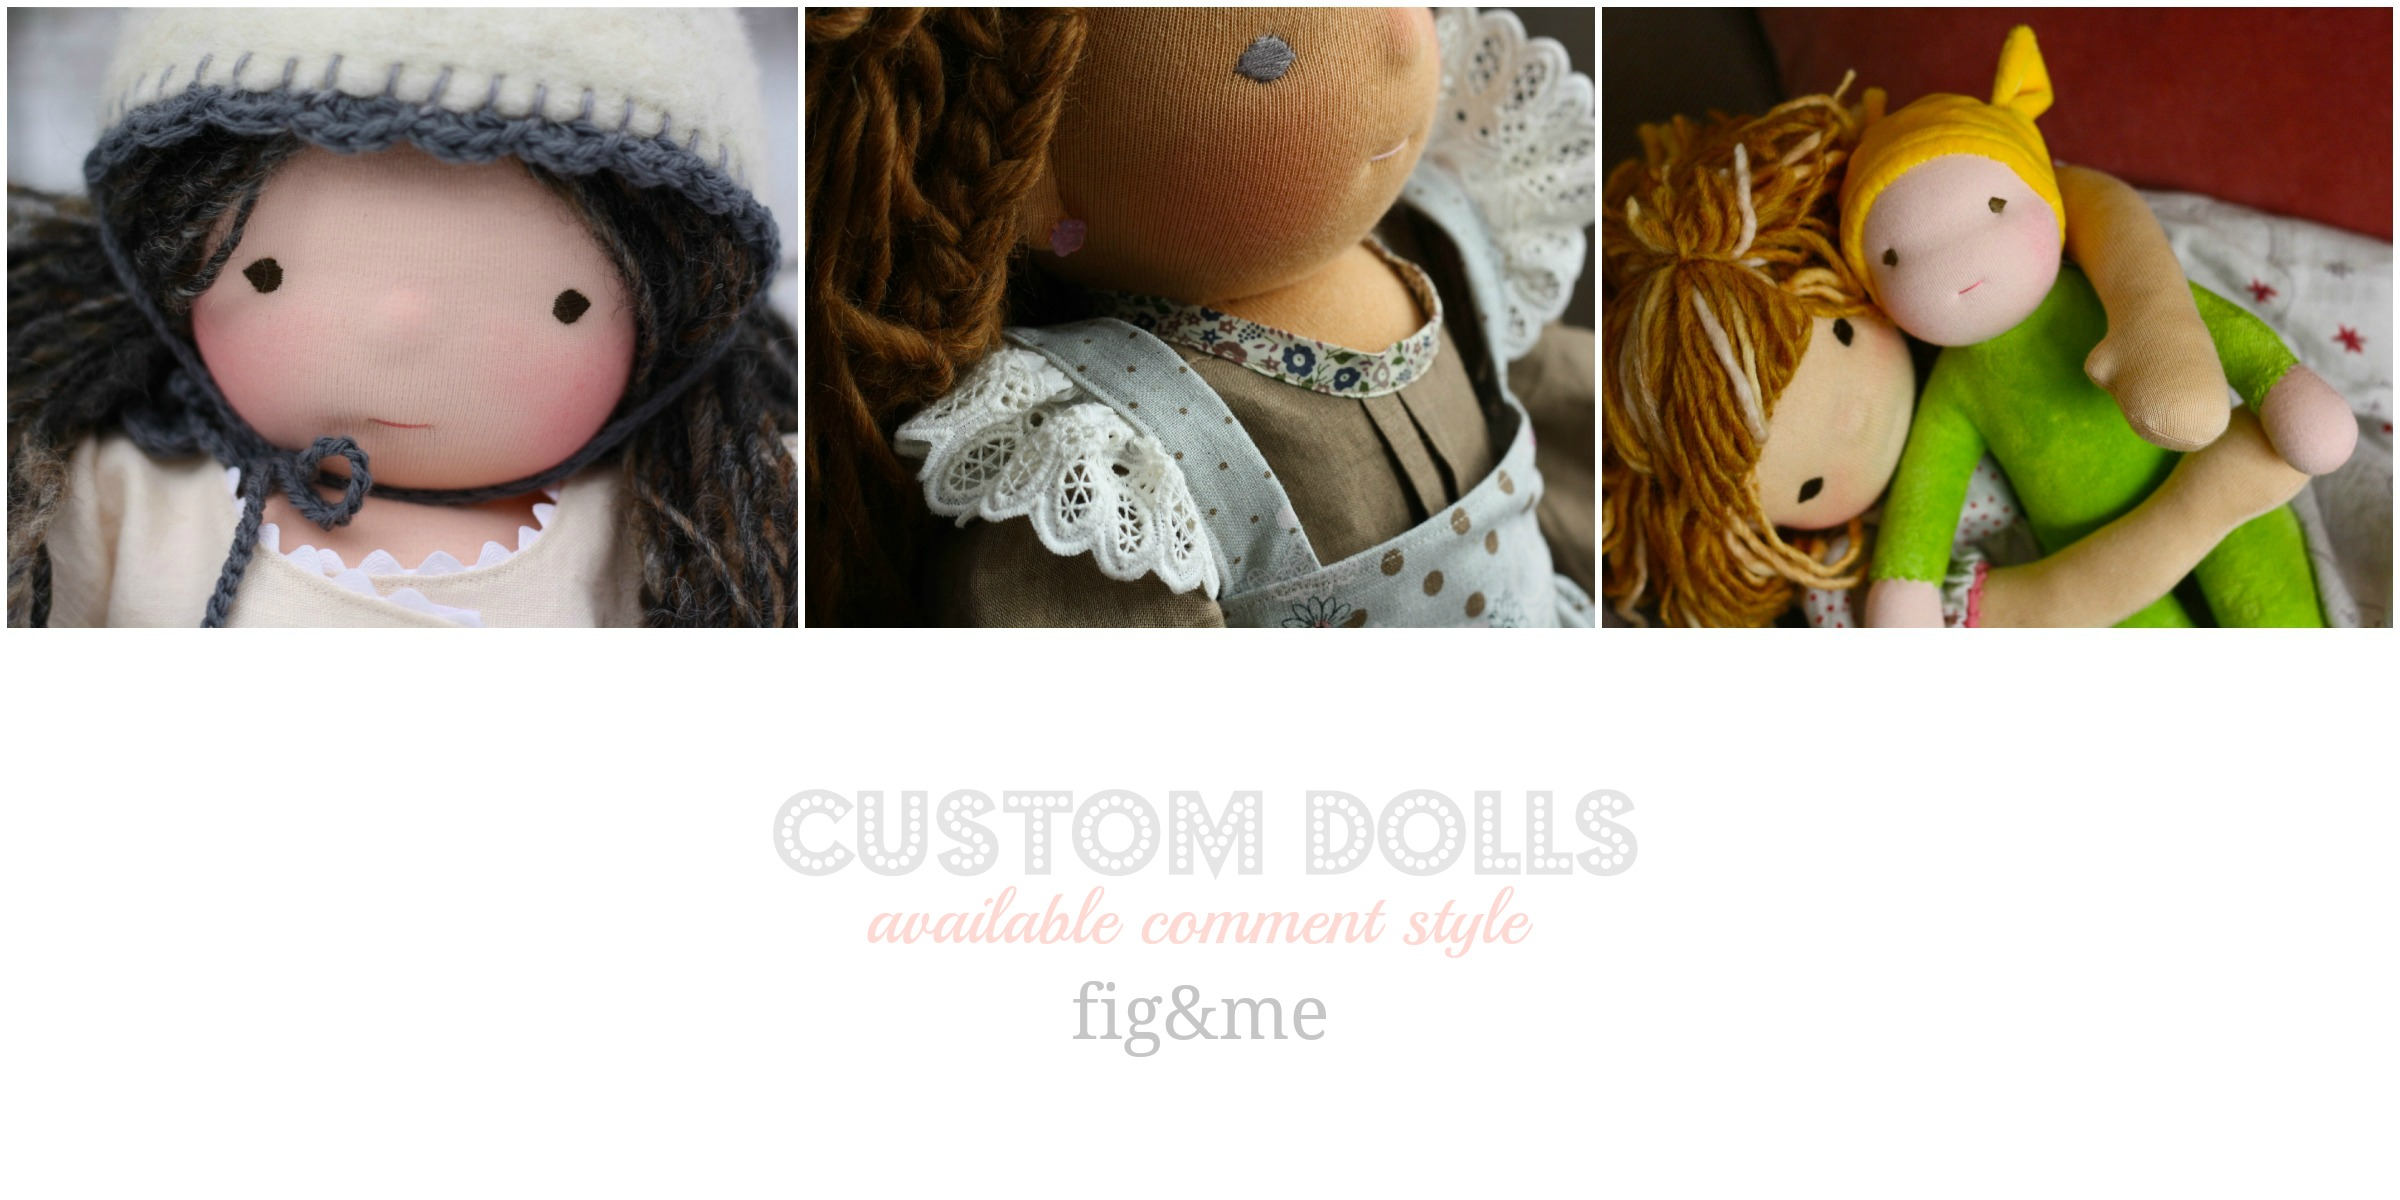 custom handmade dolls by fig and me